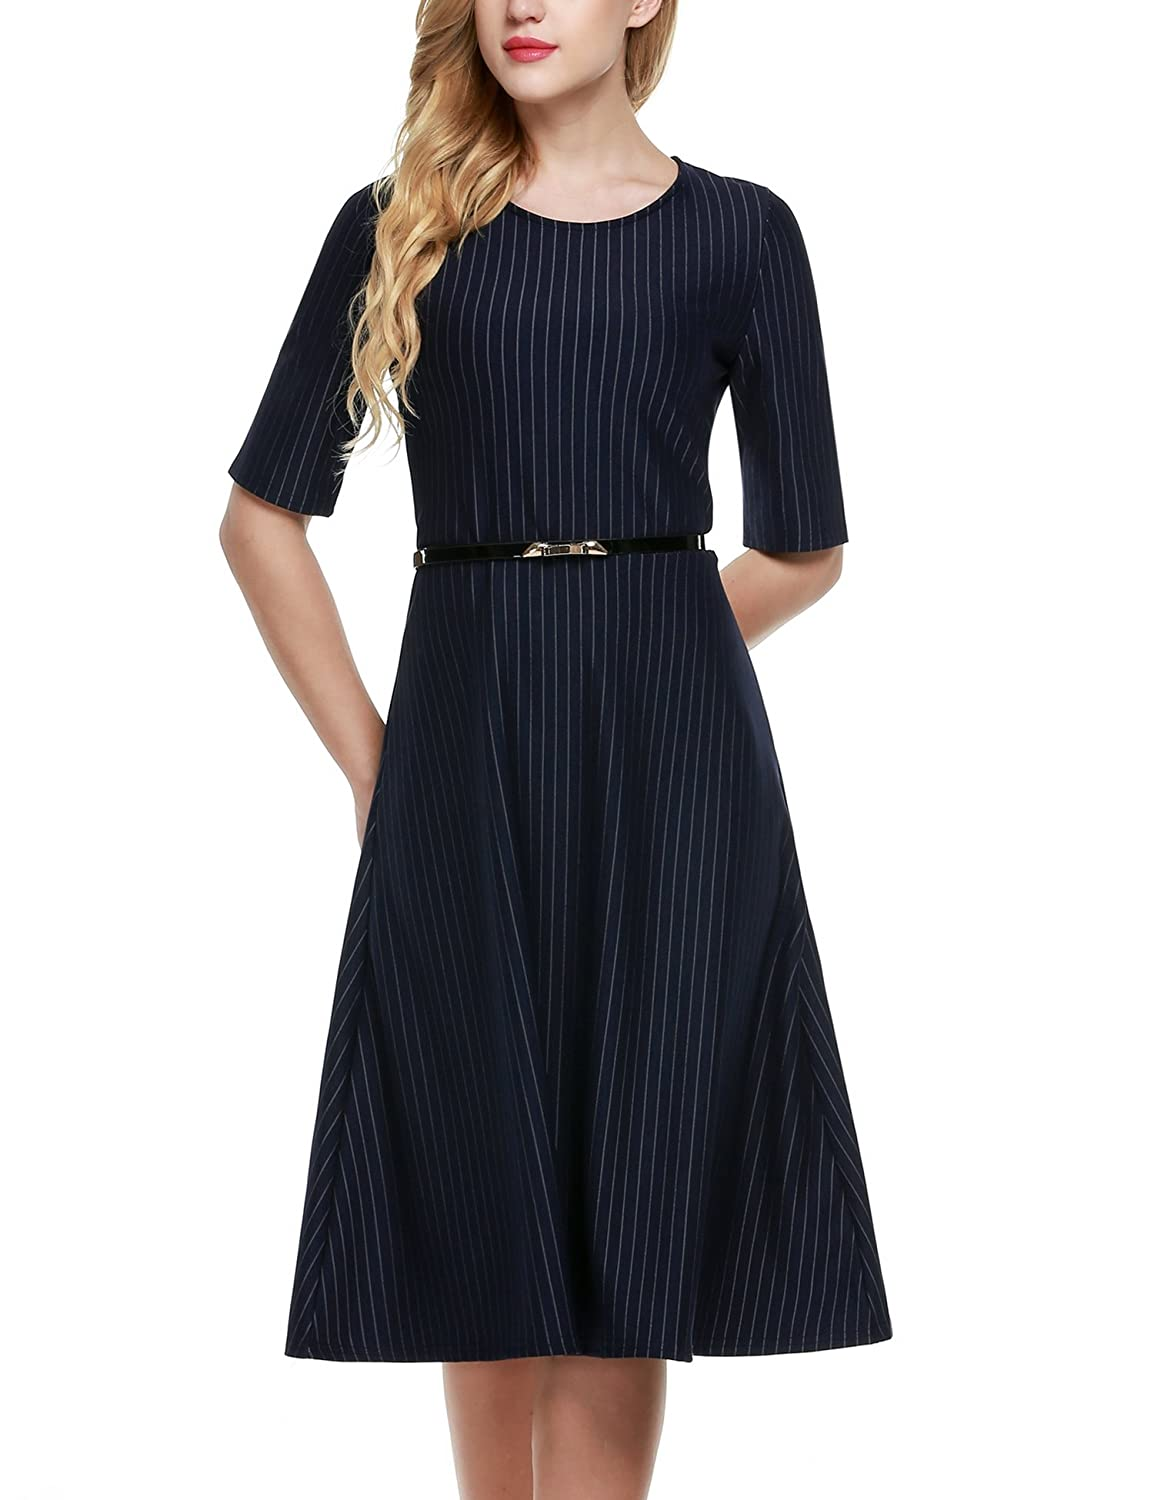 CRAVOG Damen Dress 1/2 Ärmel Sommerkleider Cockteil Abendkleider